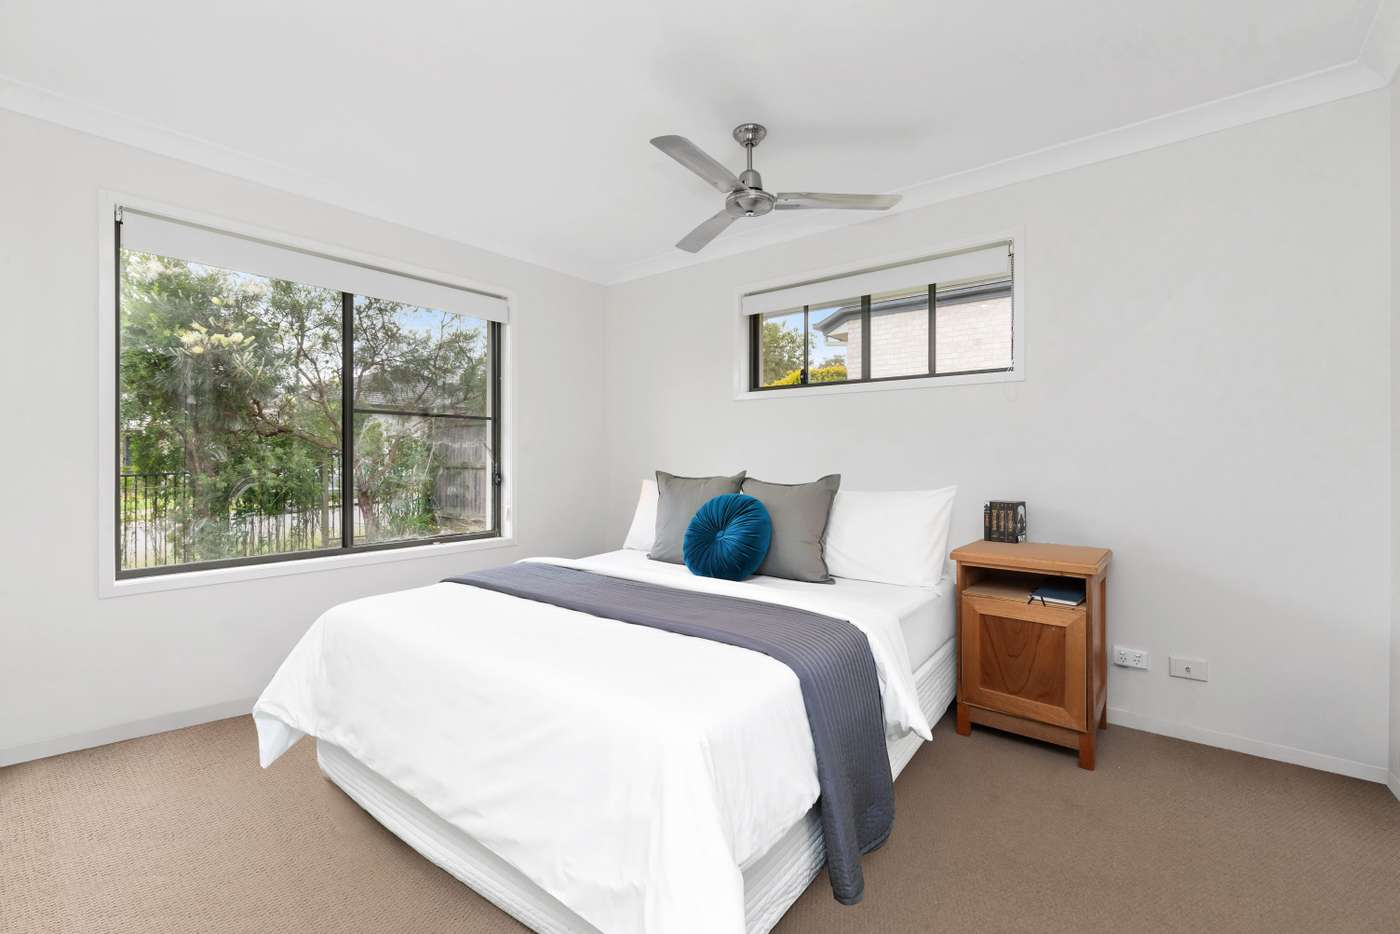 Sixth view of Homely house listing, 104 Grand Terrace, Waterford QLD 4133